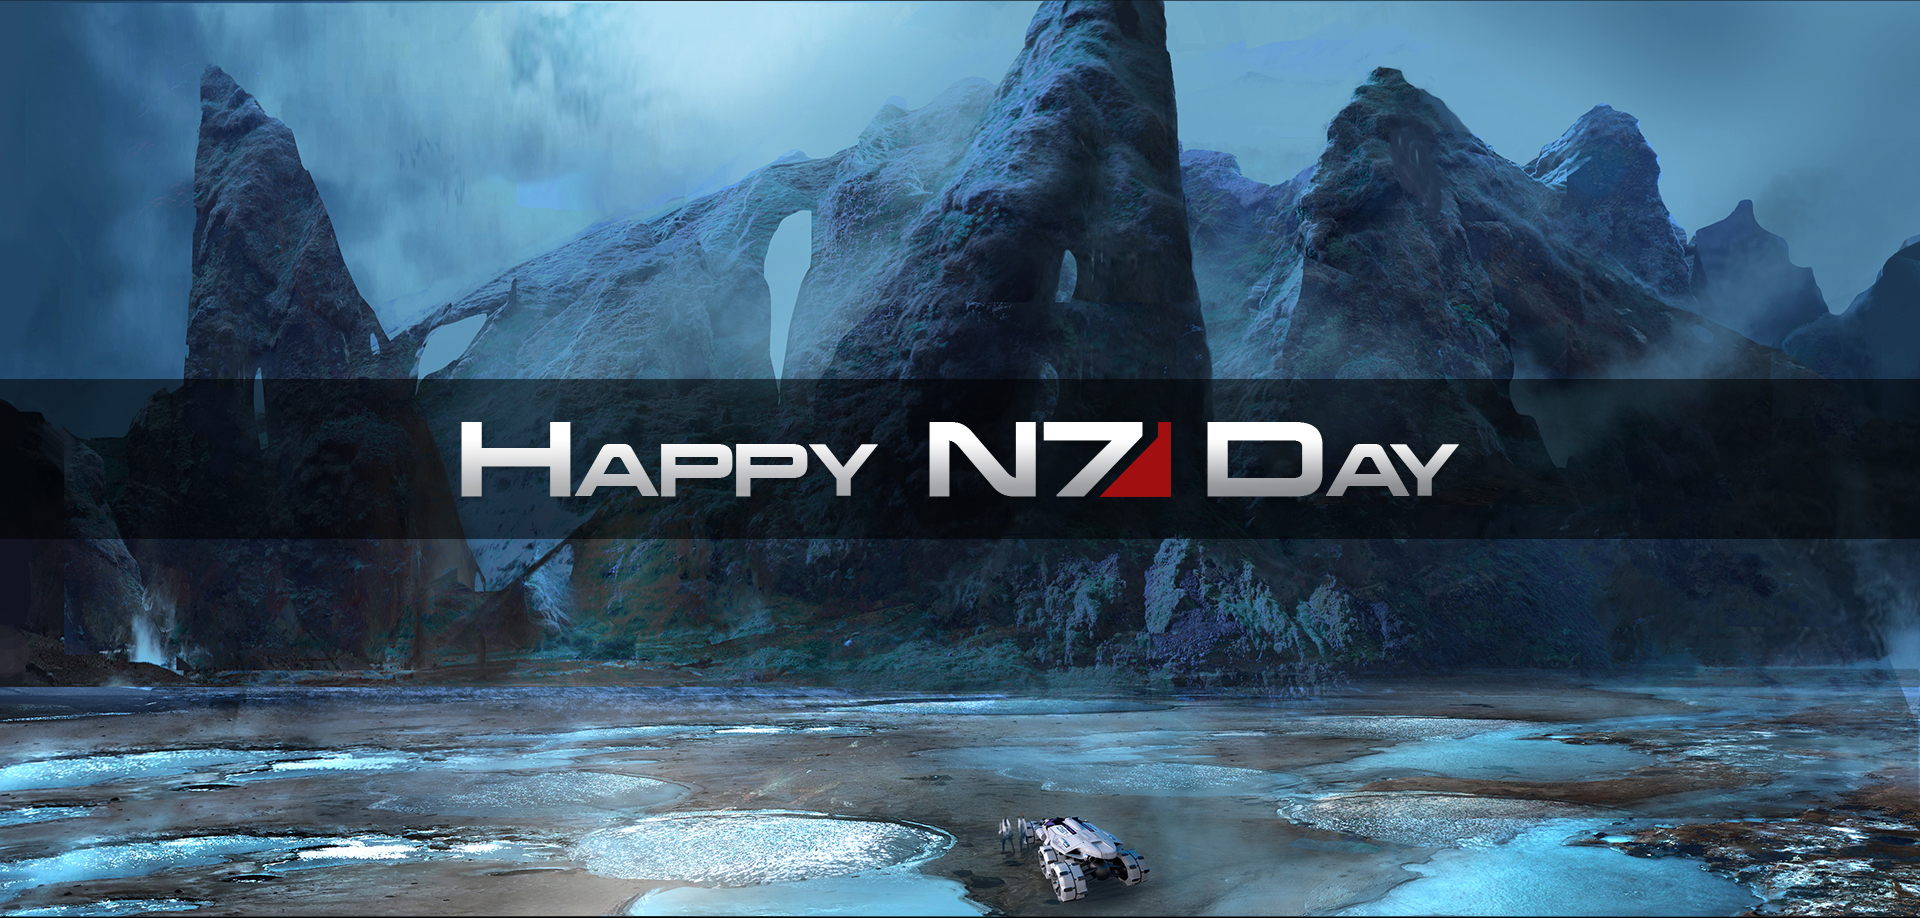 n7-day